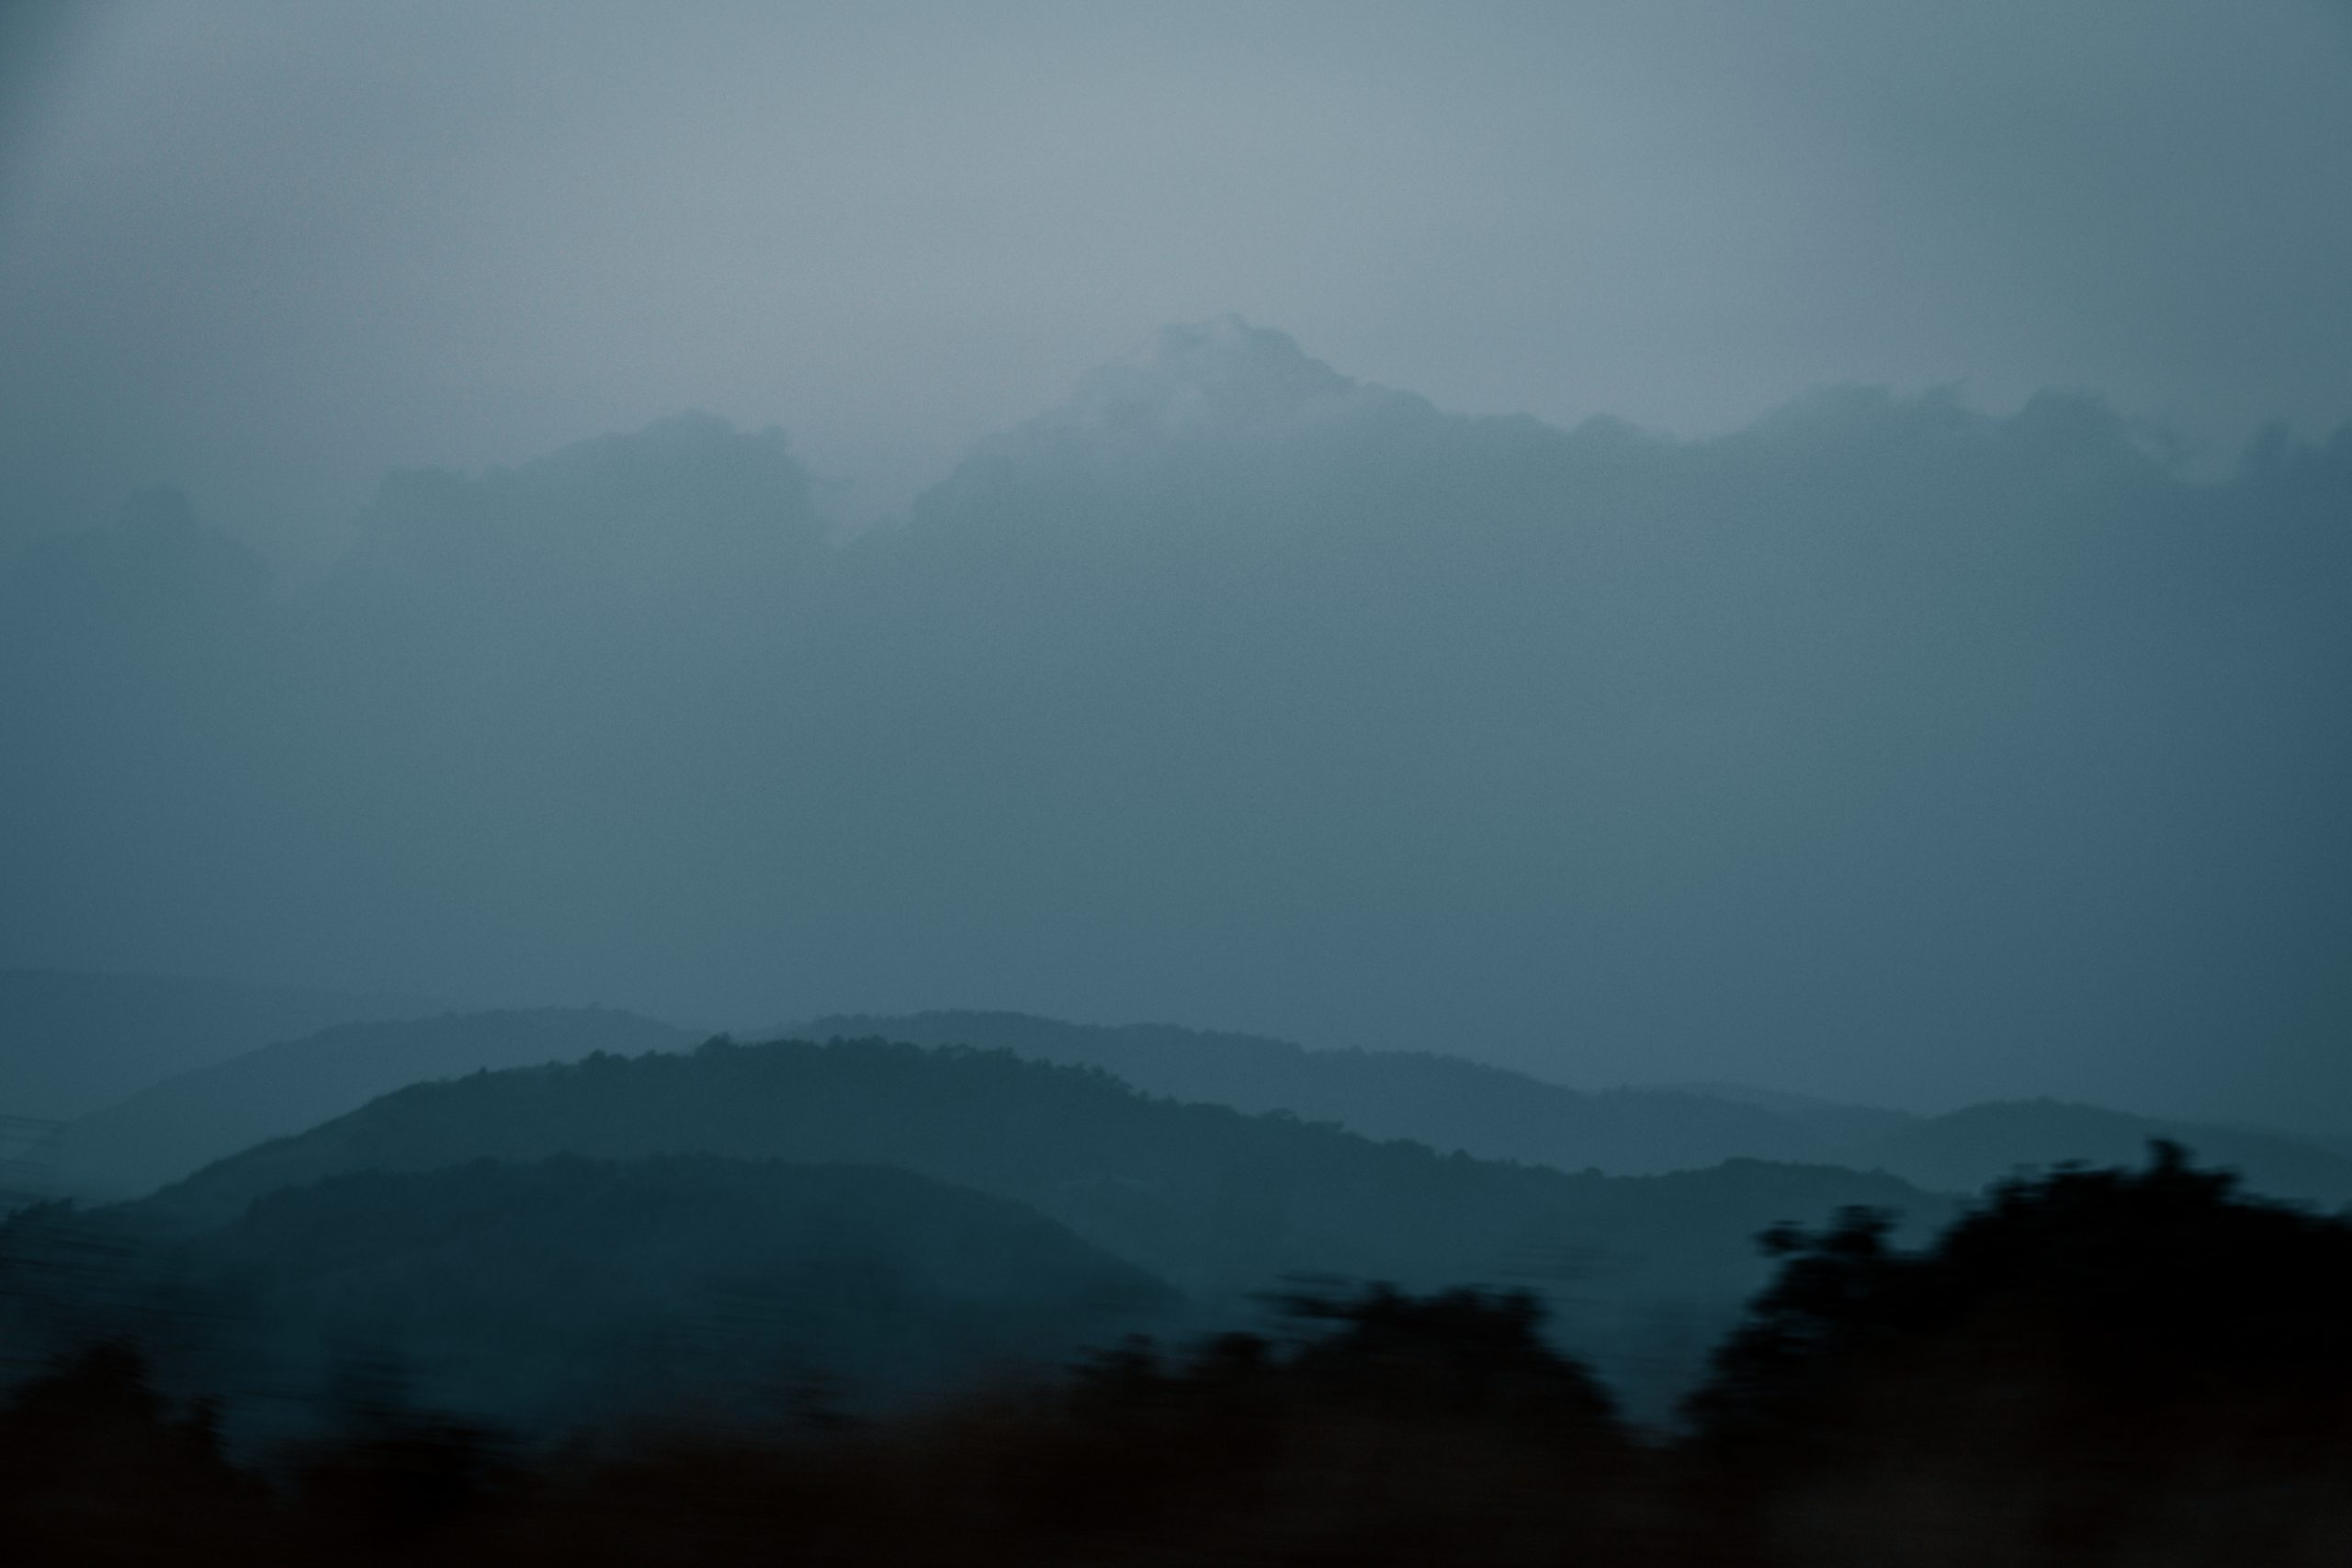 Cloudy and foggy montains